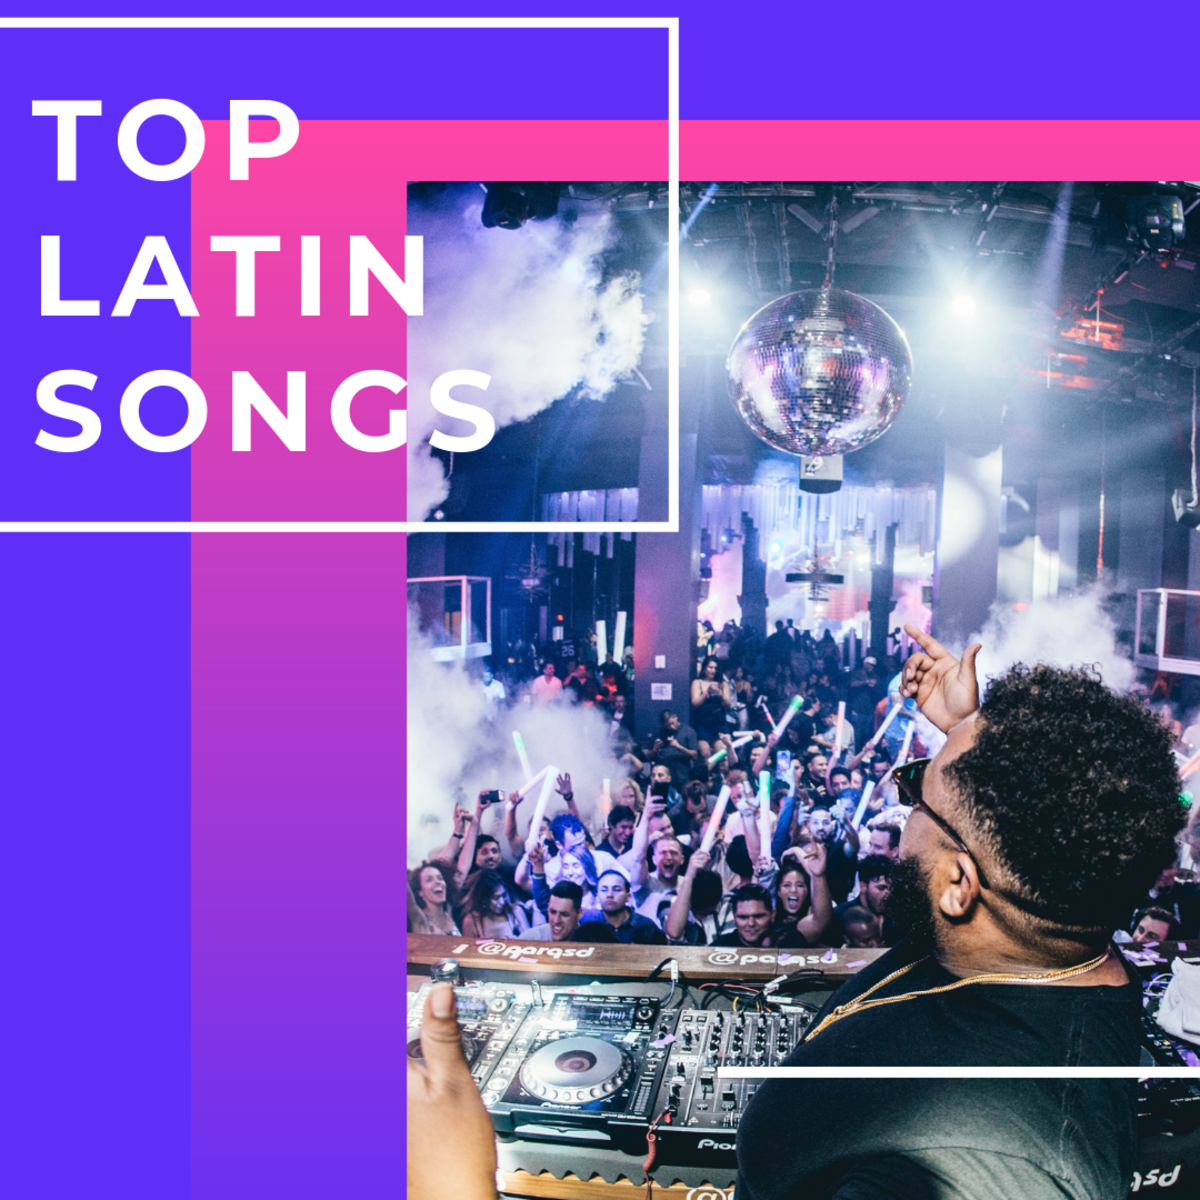 15 Hottest Spanish Songs: The Best Latin Pop Playlist of 2019